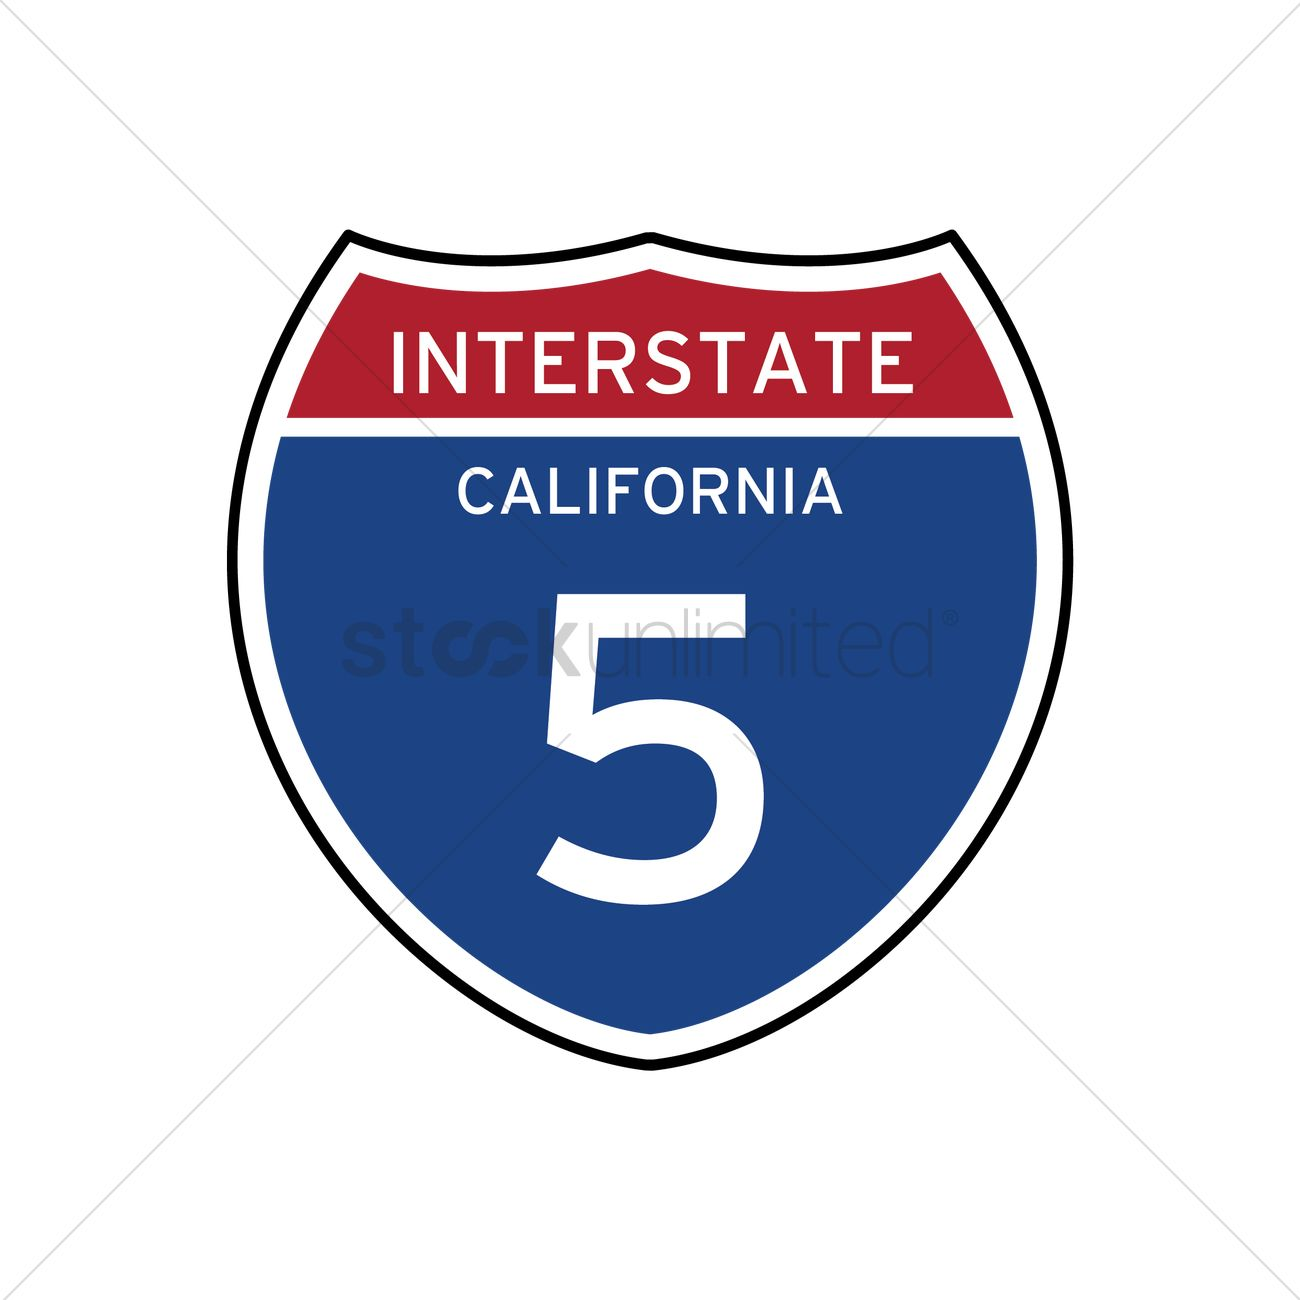 1300x1300 Interstate California 5 Route Sign Vector Image